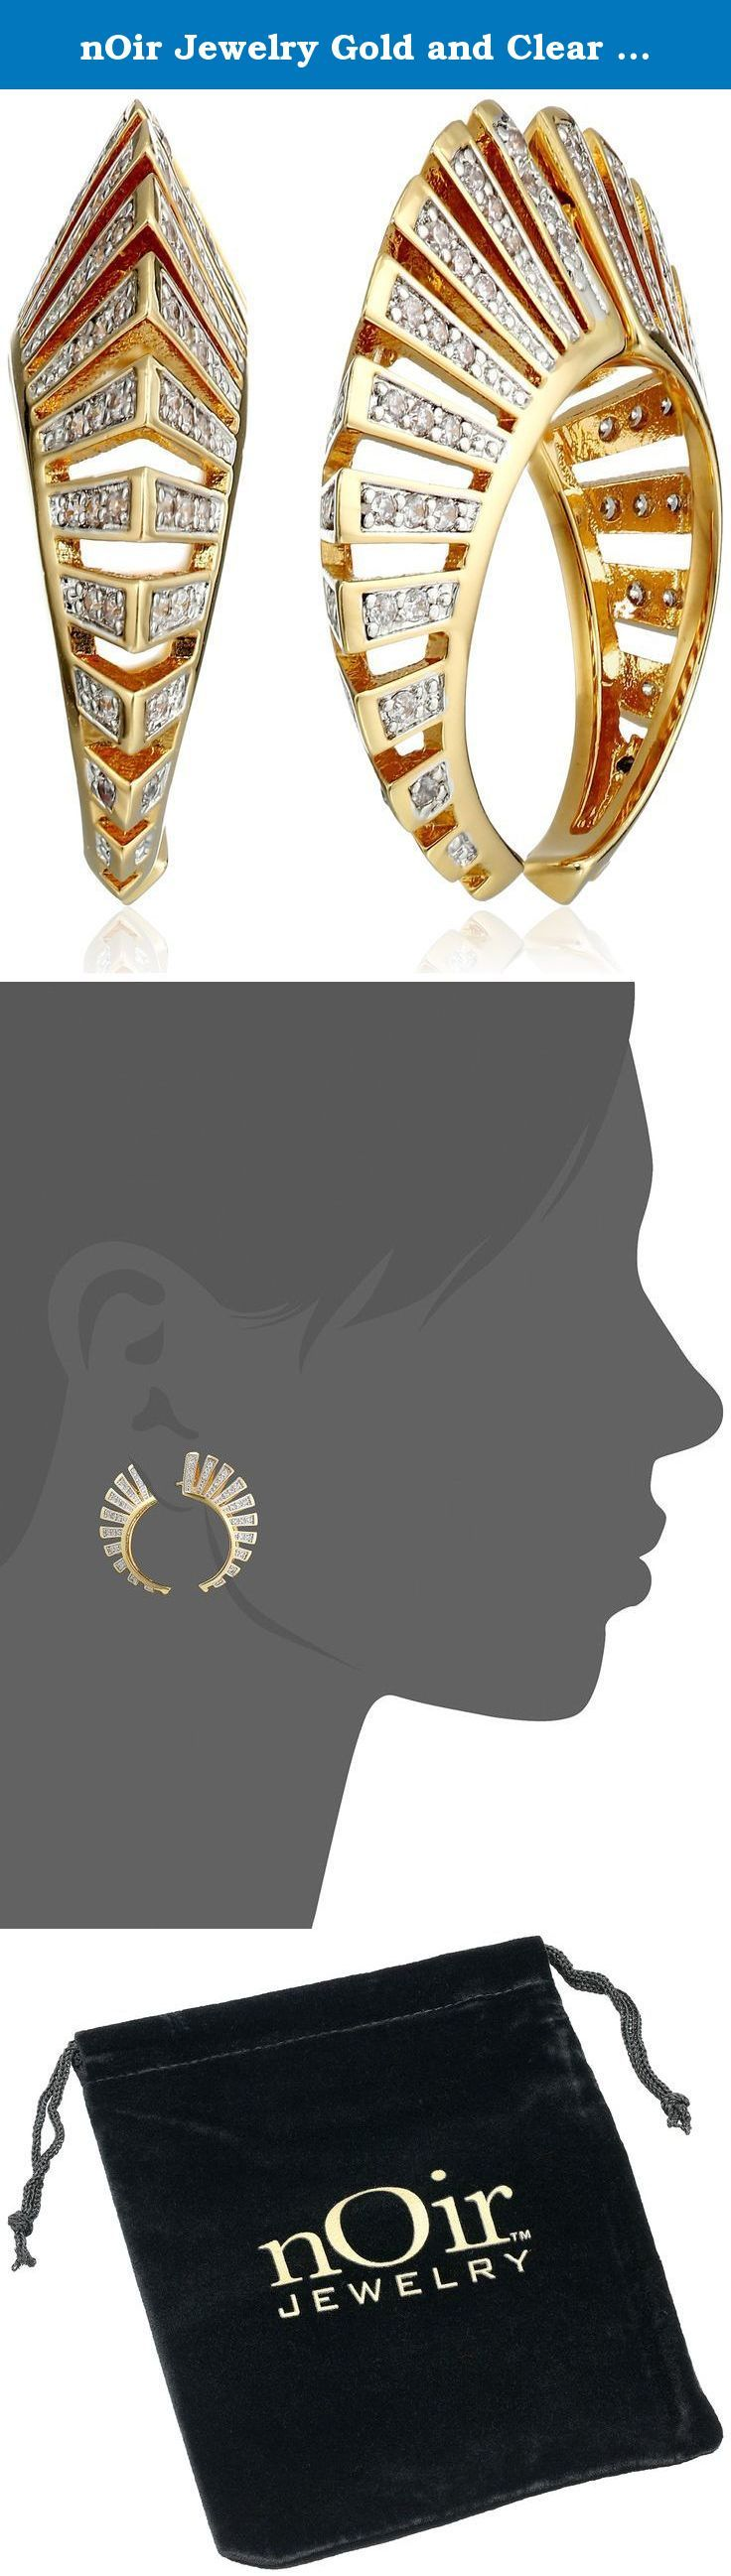 nOir Jewelry Gold and Clear Modernist Earrings. Two-piece earrings featuring openwork design and pave-set black cubic zirconia. Friction-back findings.